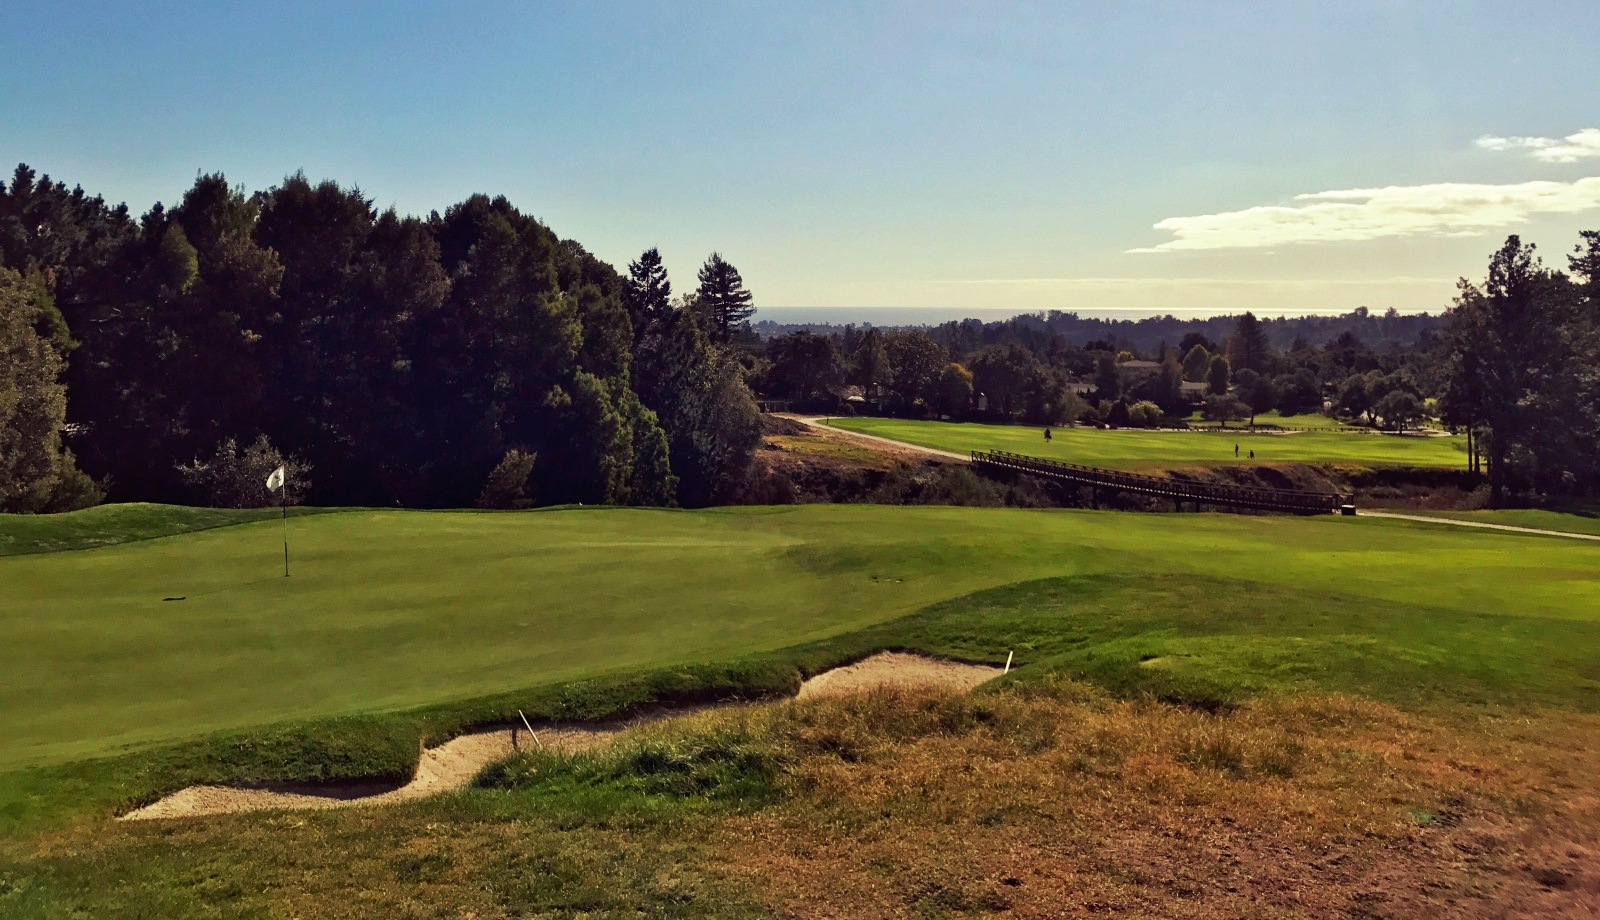 View from behind the eleventh green with the barranca in the foreground and Pacific in the distance.